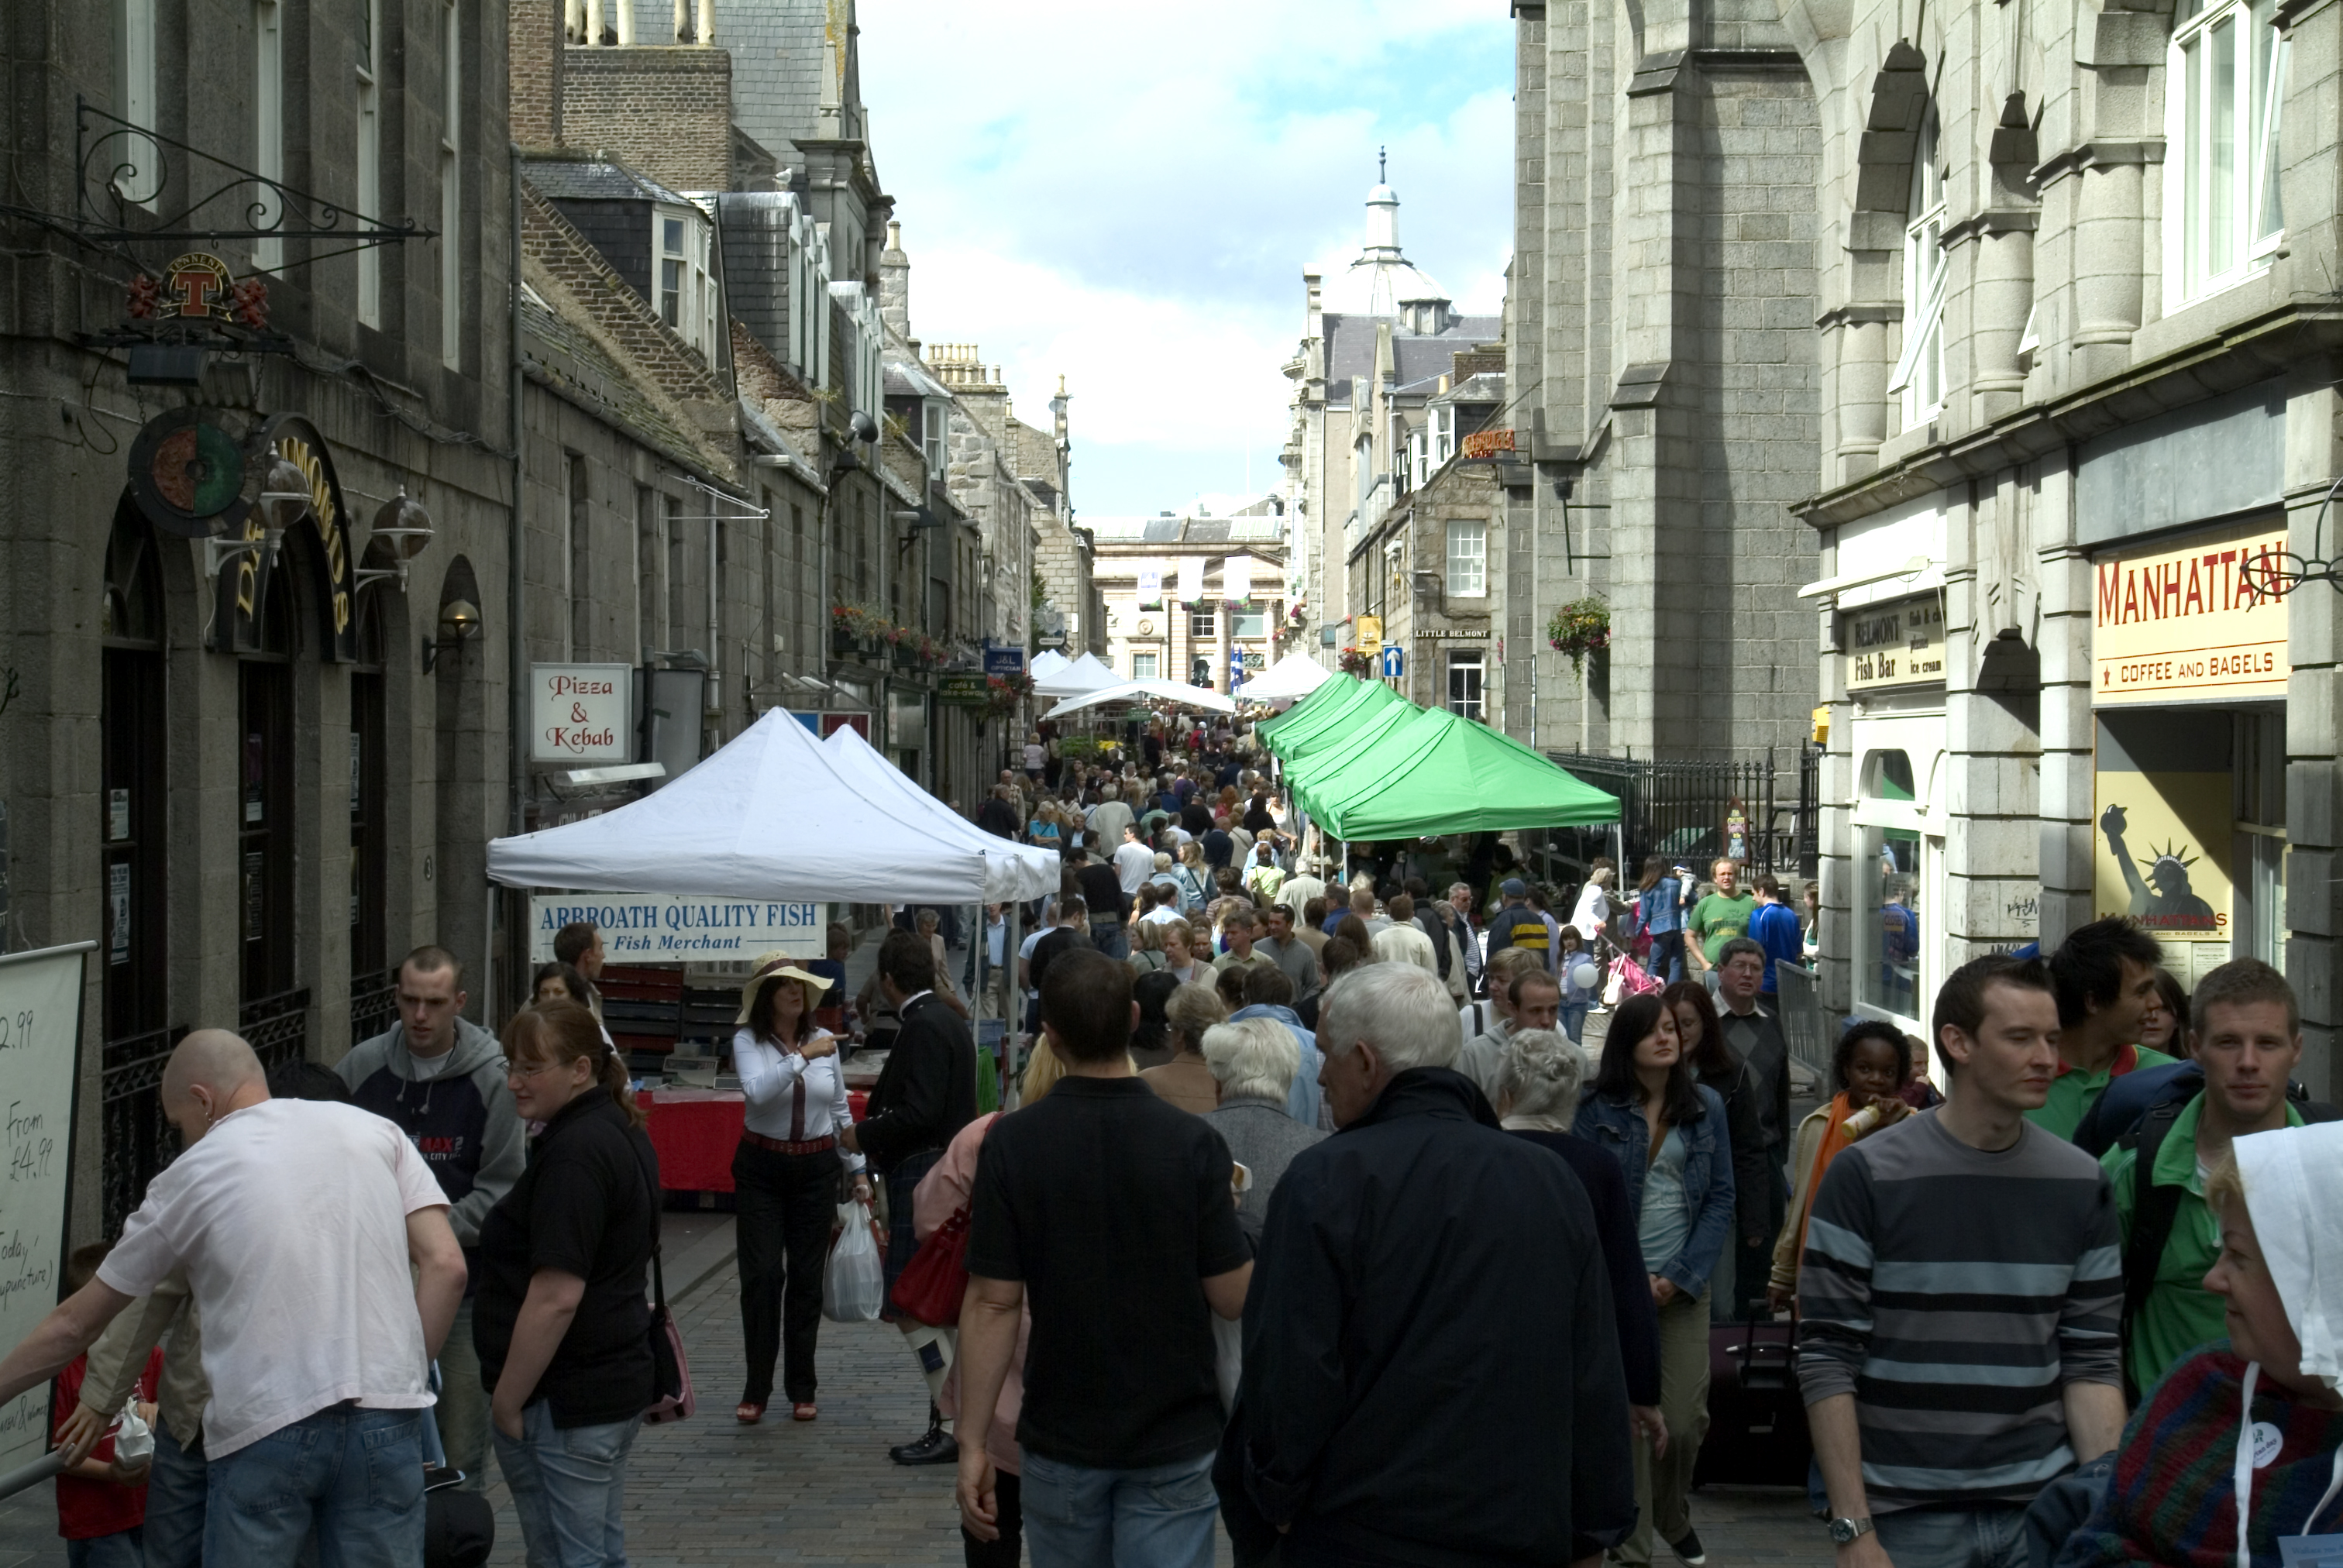 Aberdeen city centre market